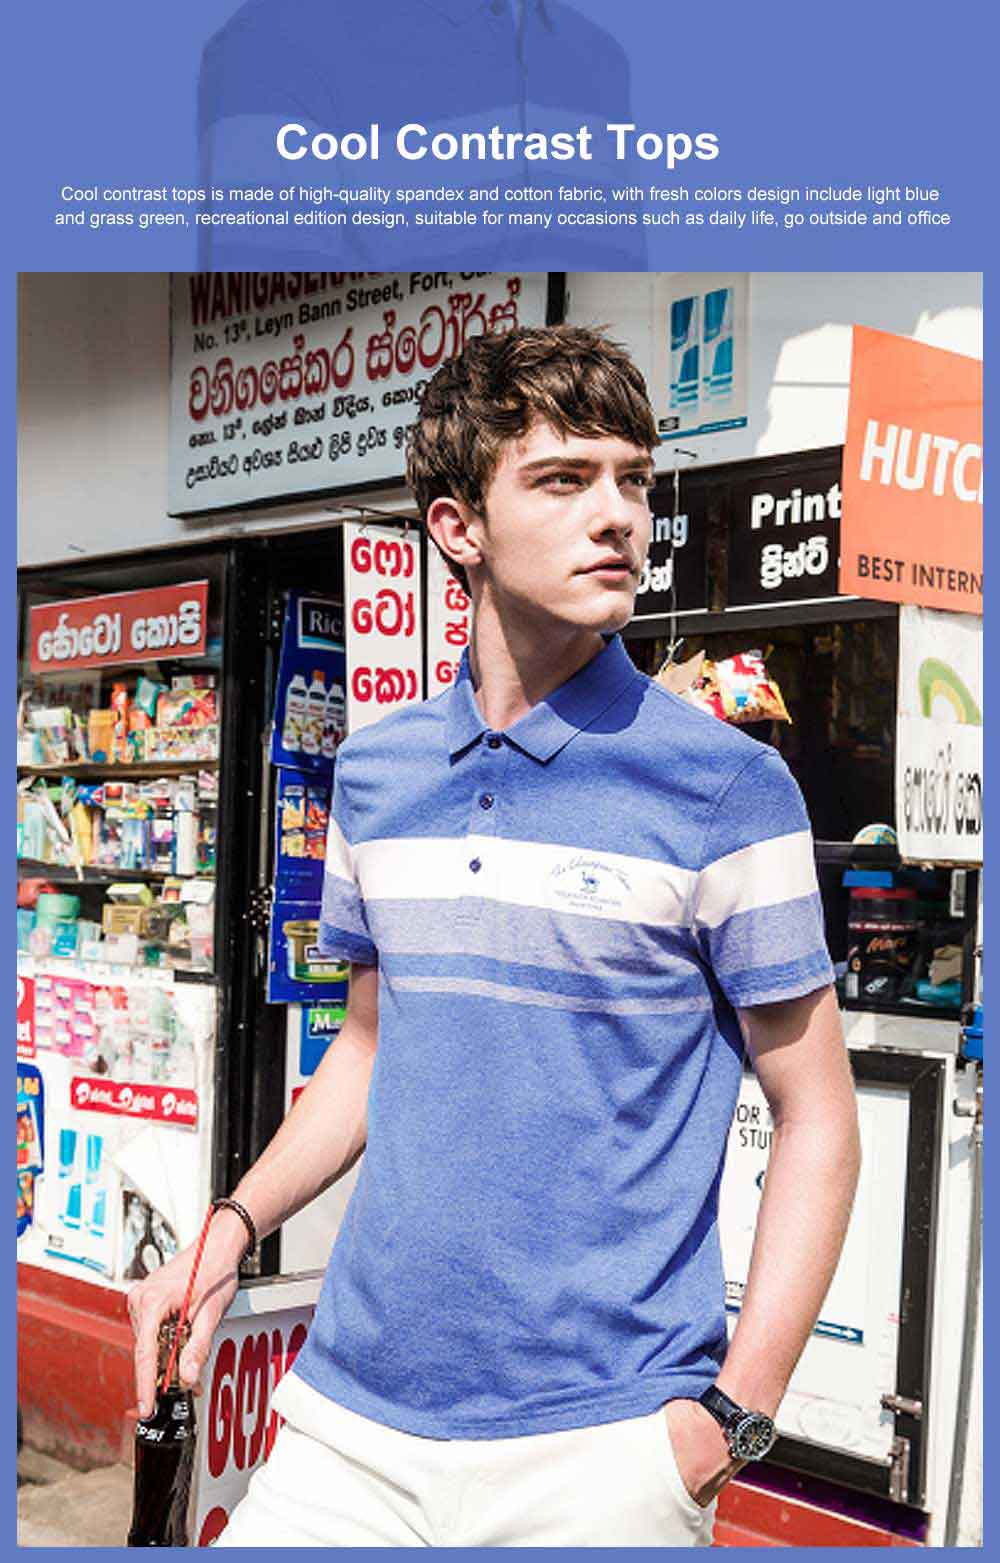 Cool Contrast Tops for Men, Recreational Edition Short-sleeve Polo, Breathable Spandex Cotton T-shirt 0